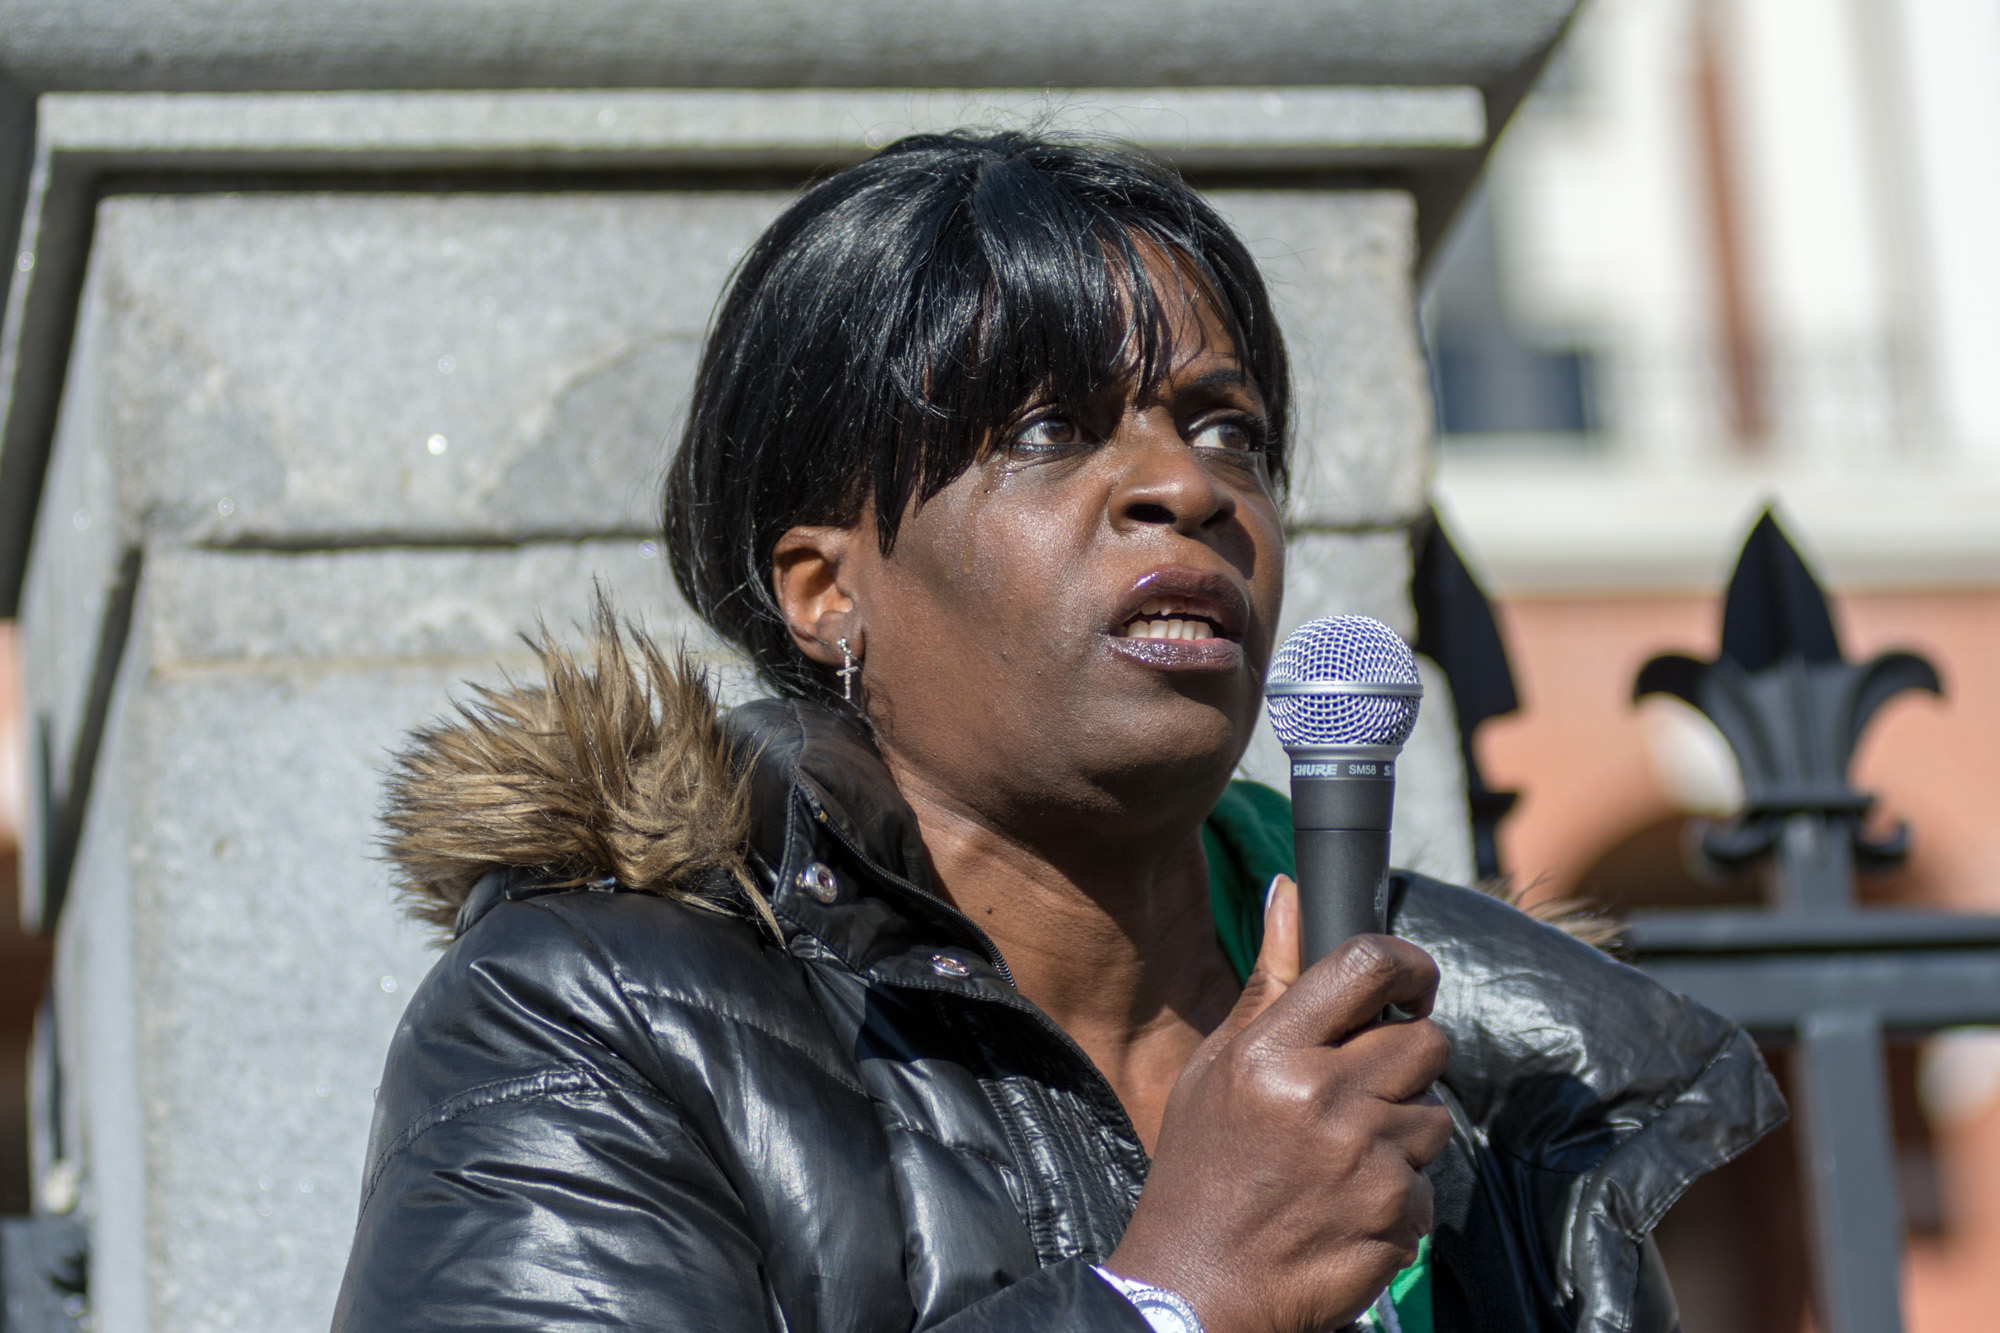 One speaker gave an emotional recounting violence and lack of accountability